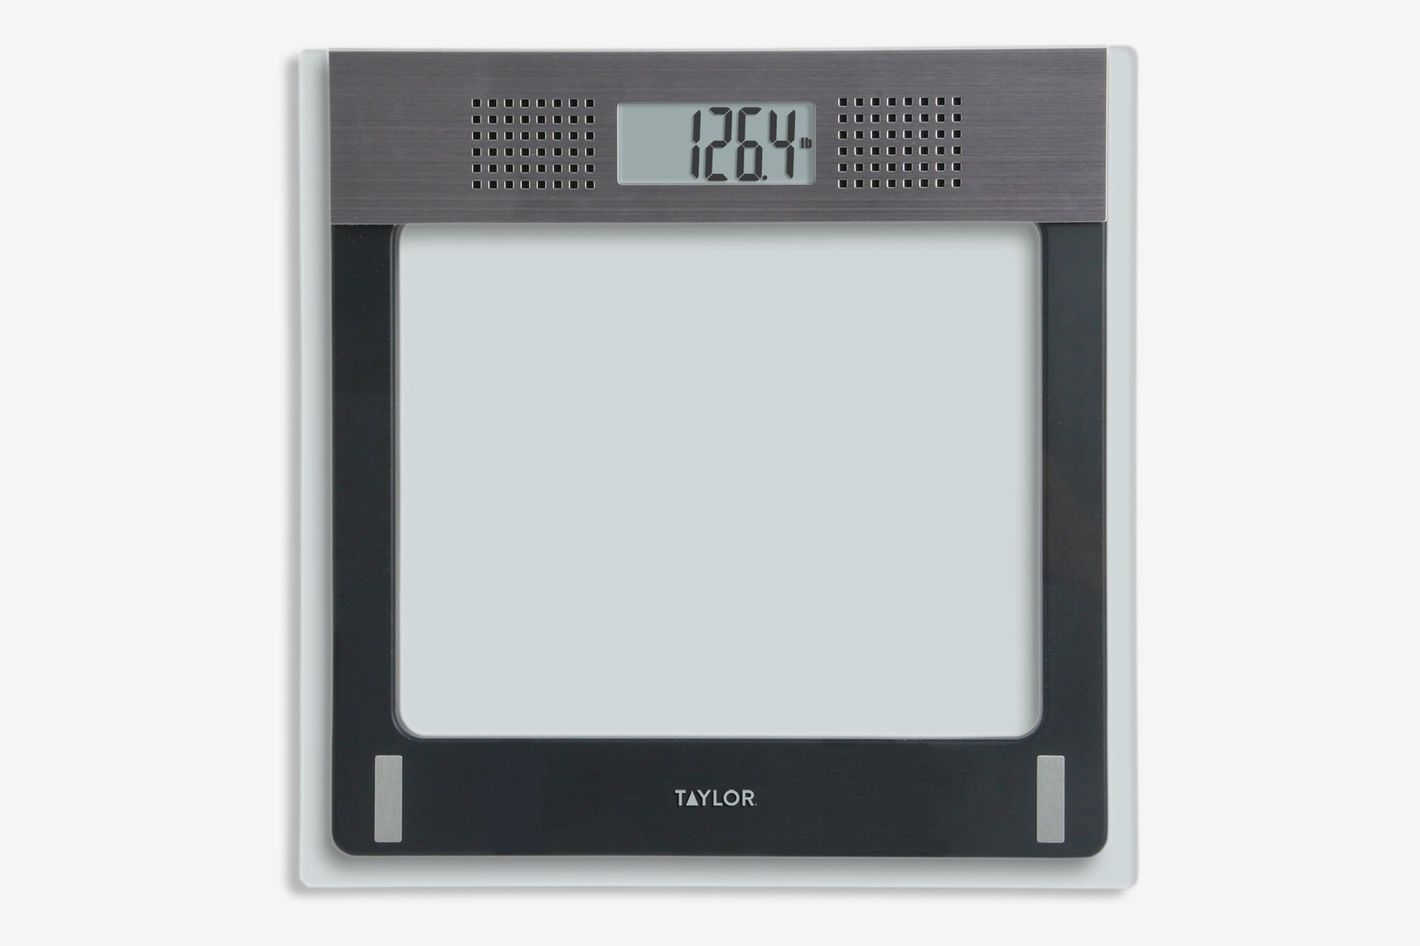 Taylor Electronic Glass Talking Bathroom Scale